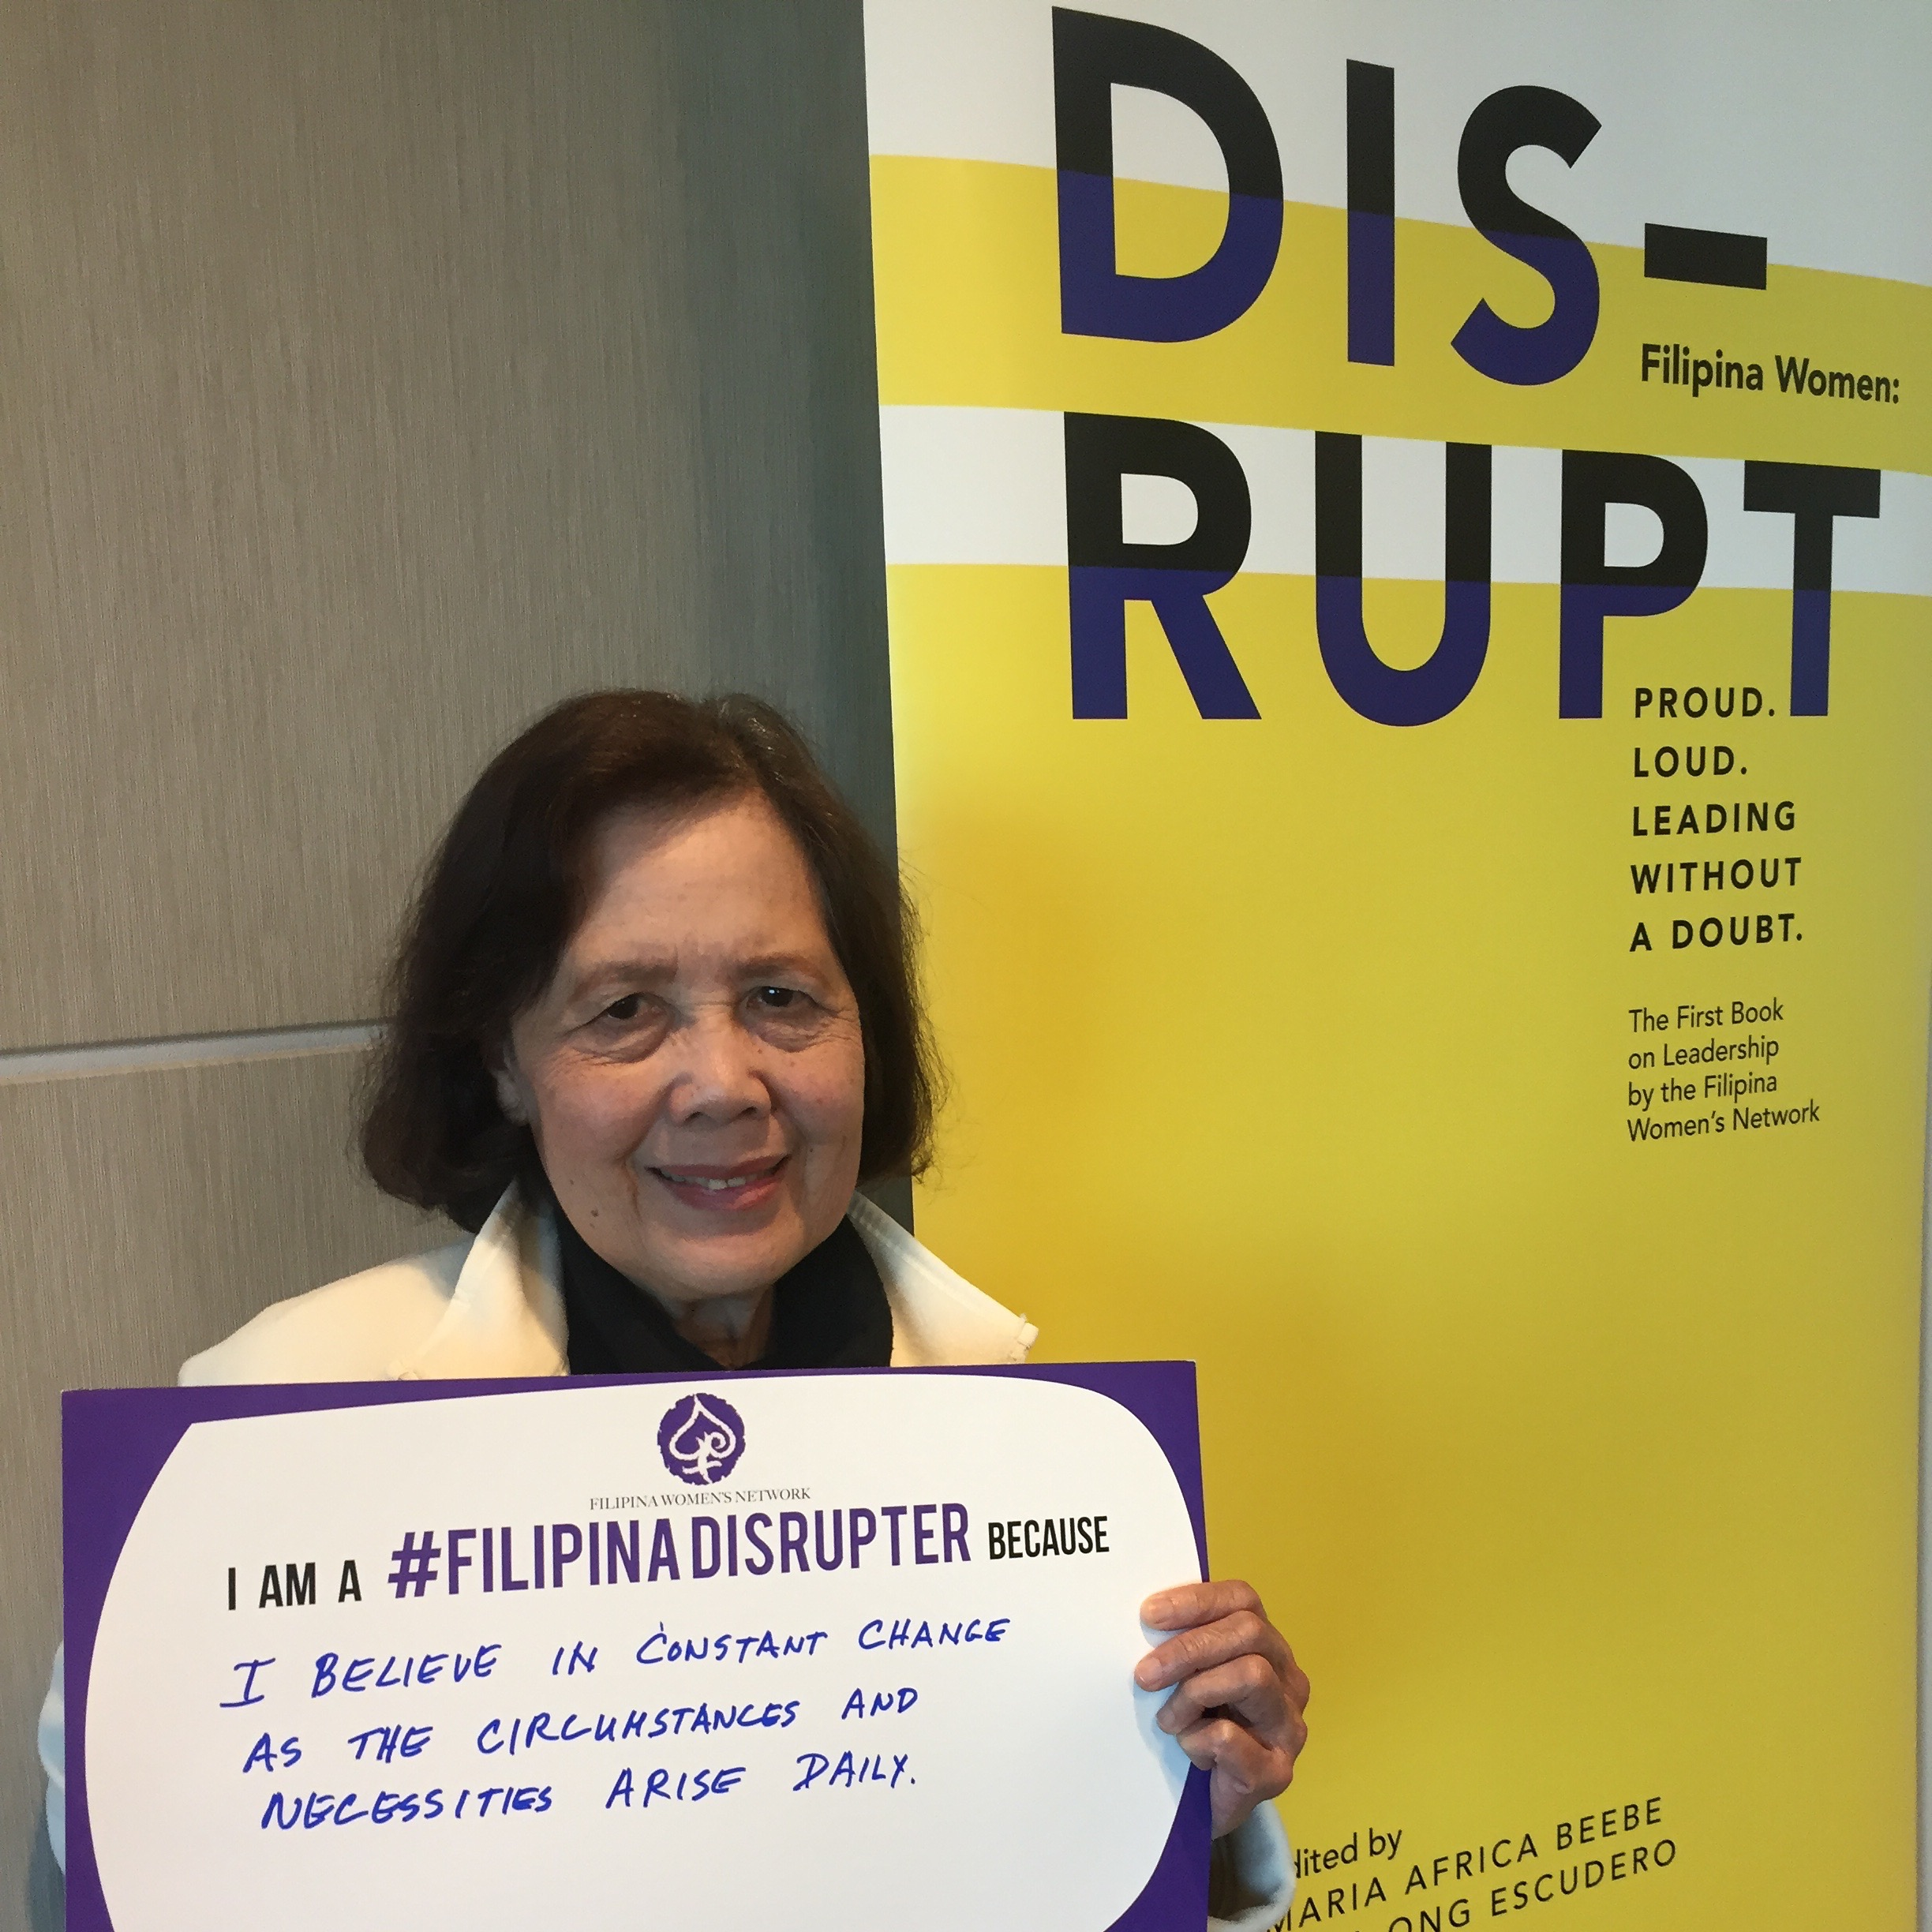 #FilipinaDISRUPTers across all generations: Asuncion P. Disini , M.D. mother of Melissa Orquiza (Global FWN100™ '15) shares her impact statement at DISRUPTing SF